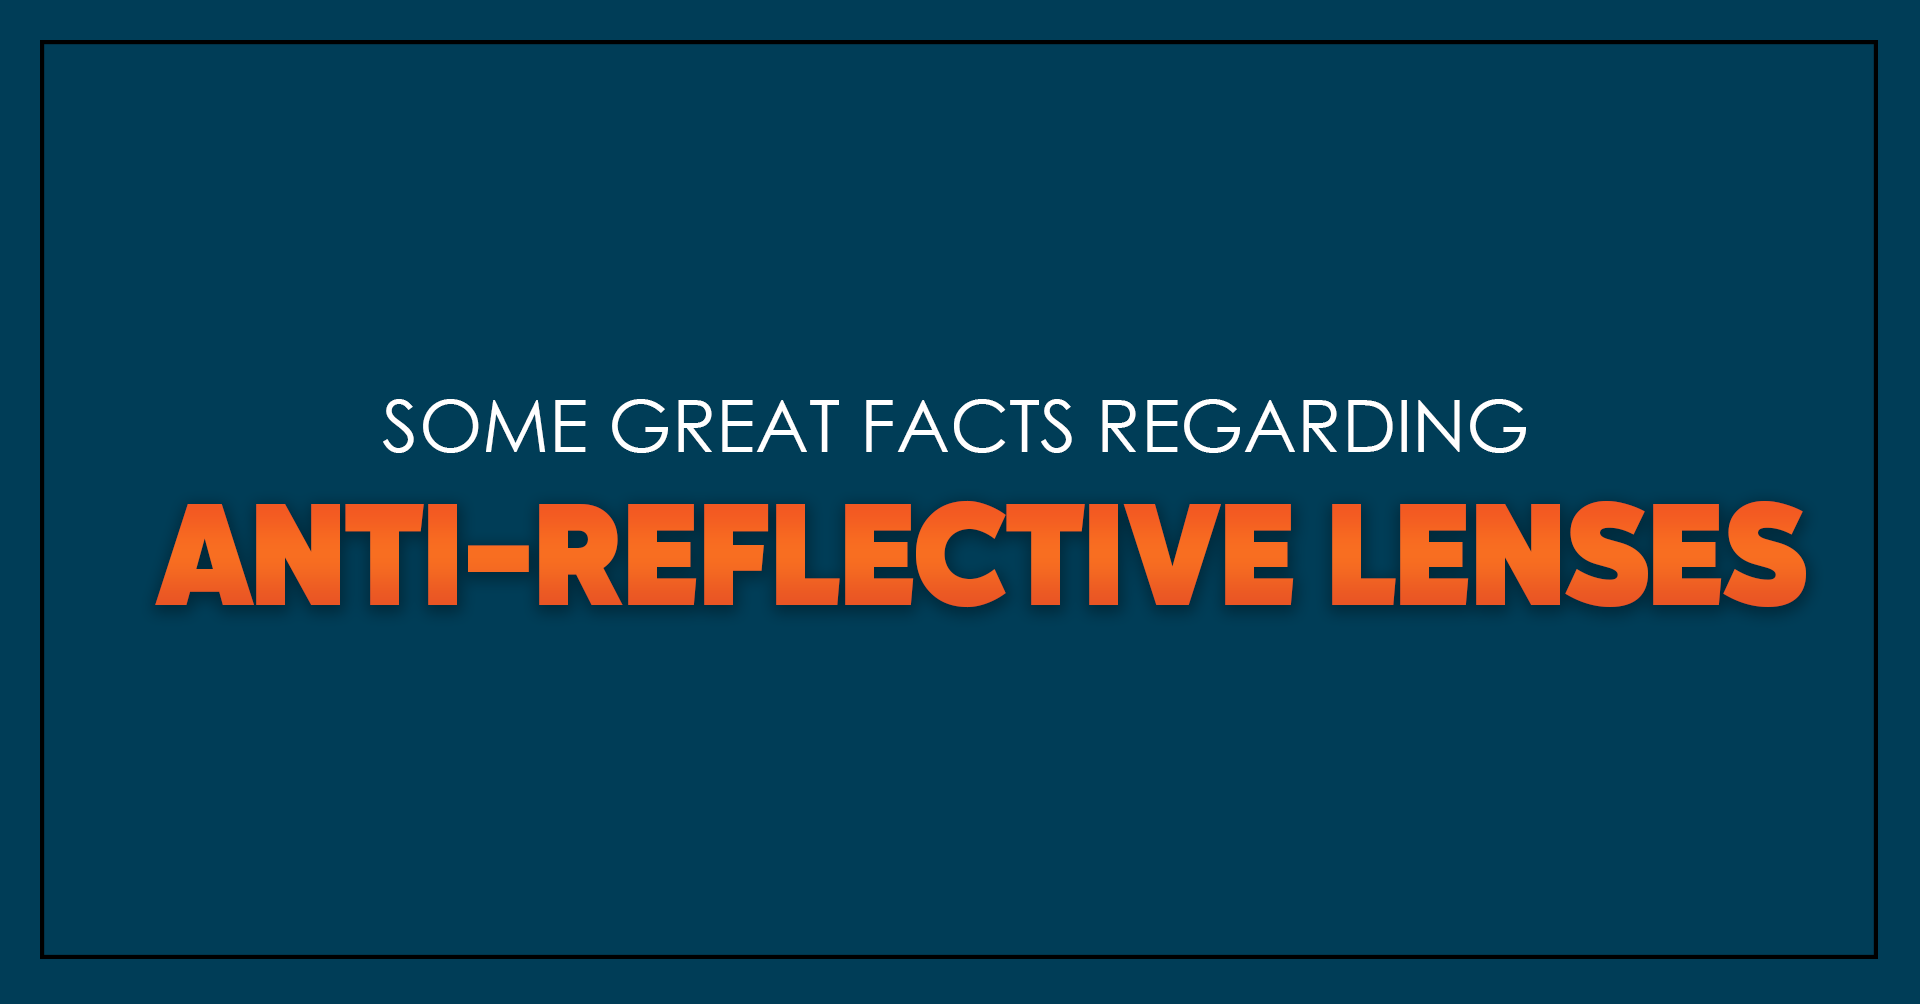 16) SOME GREAT FACTS REGARDING ANTI-REFLECTIVE LENSES